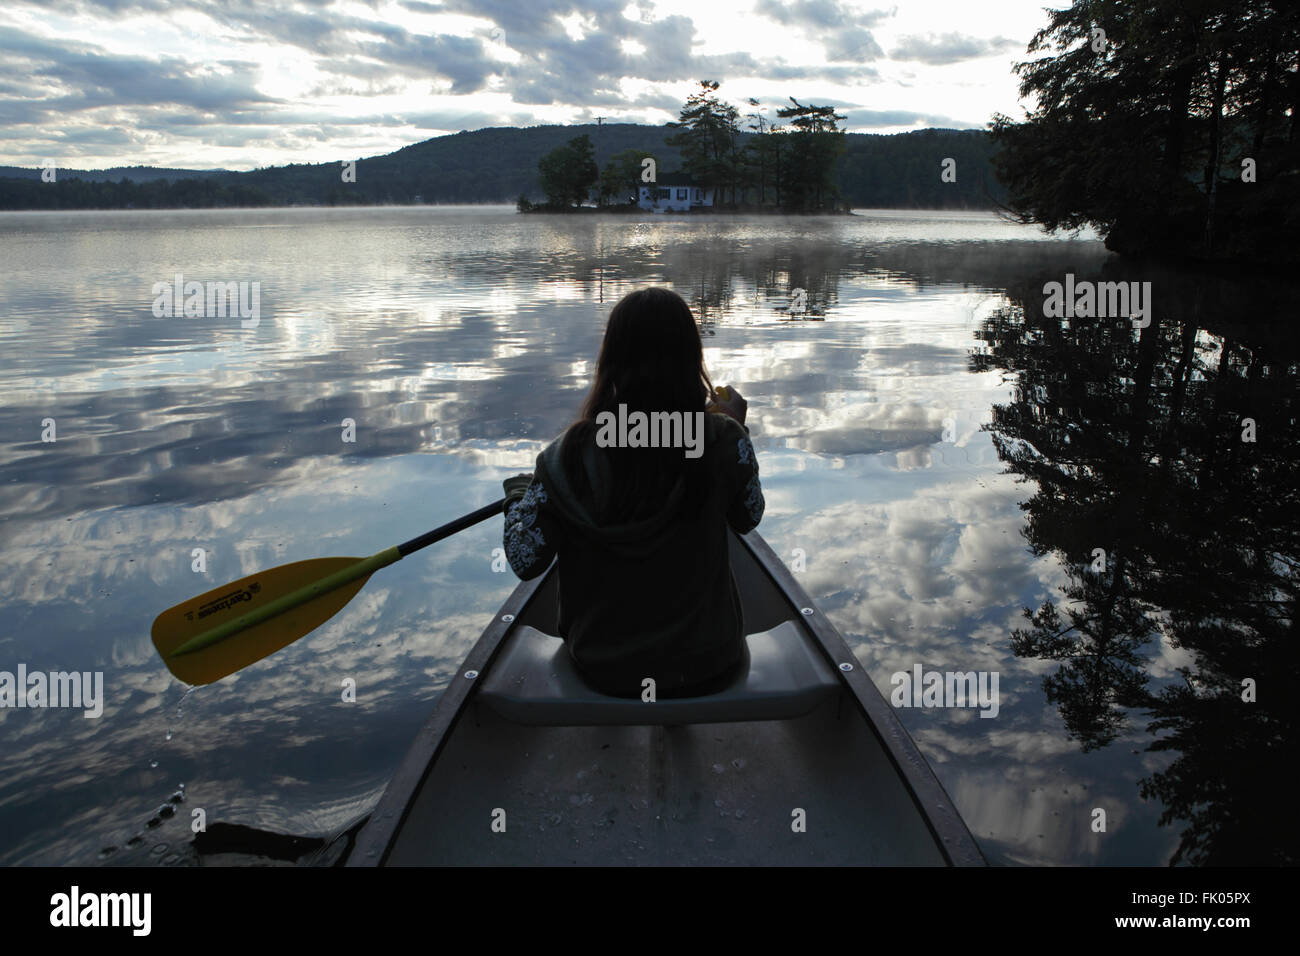 Young girl paddling a canoe on a lake reflecting clouds as the sun rises over a hill. - Stock Image